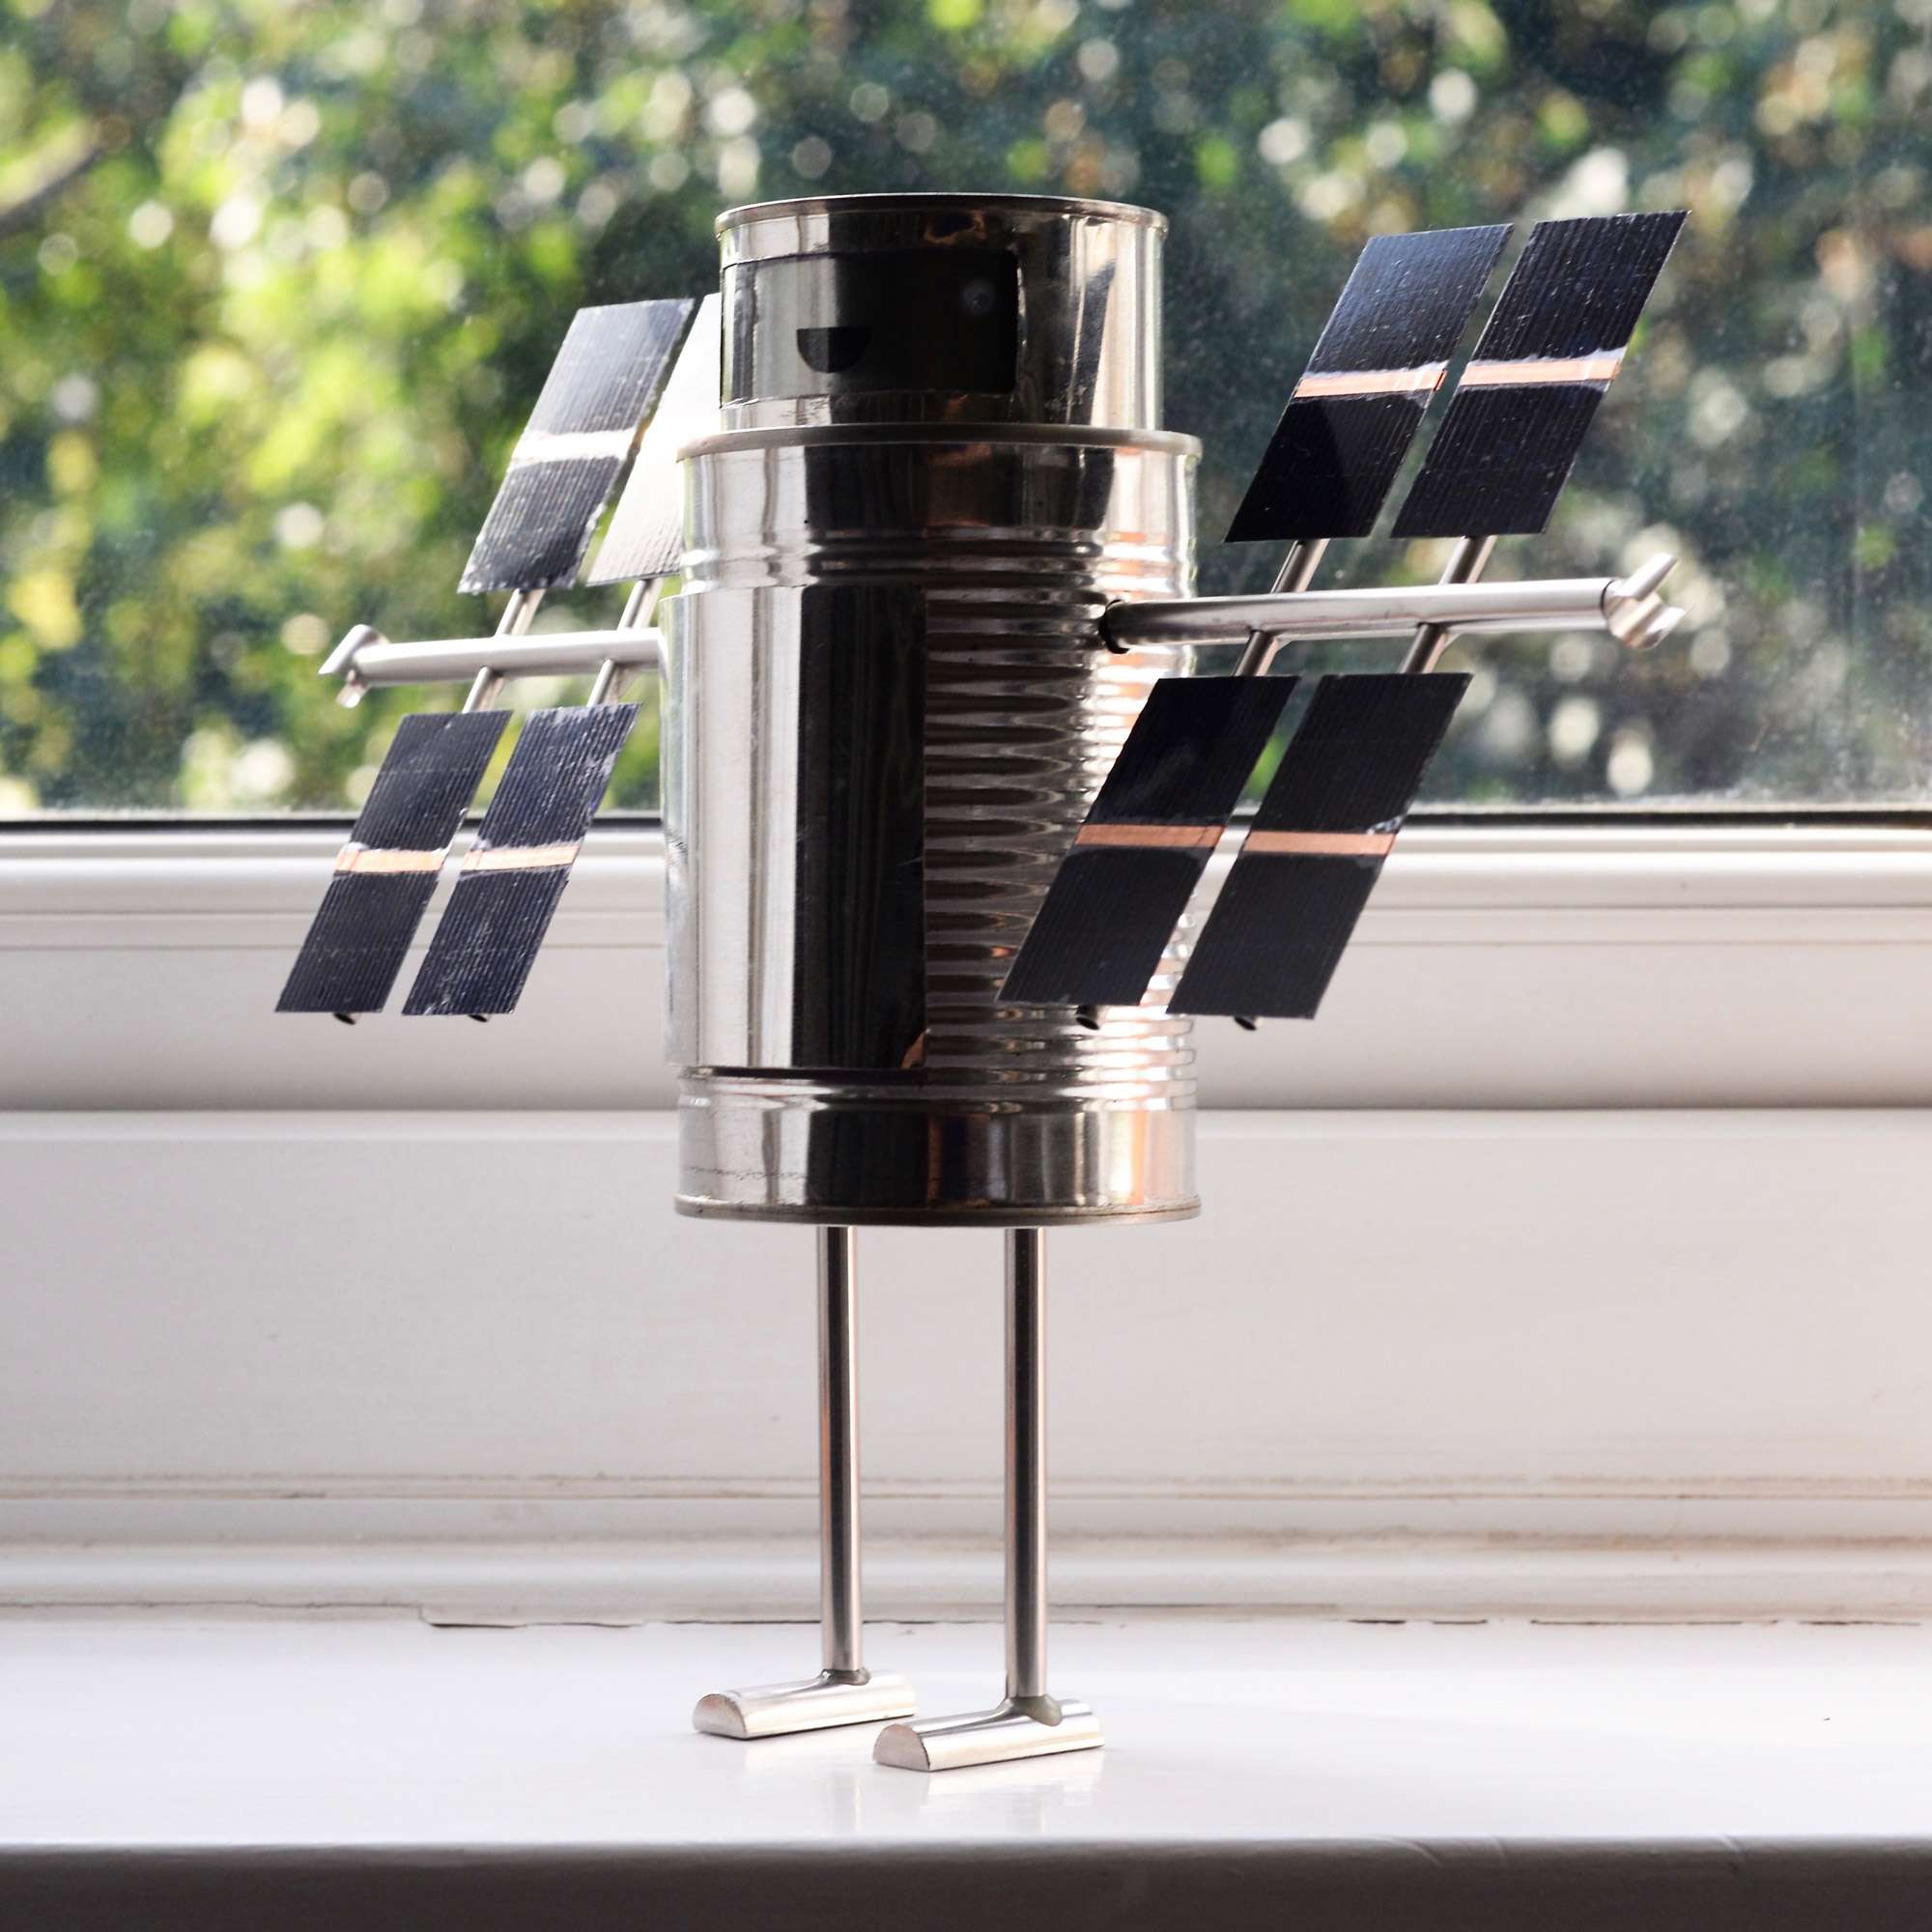 My solar robot, sitting on the windowsill, harvesting sunlite